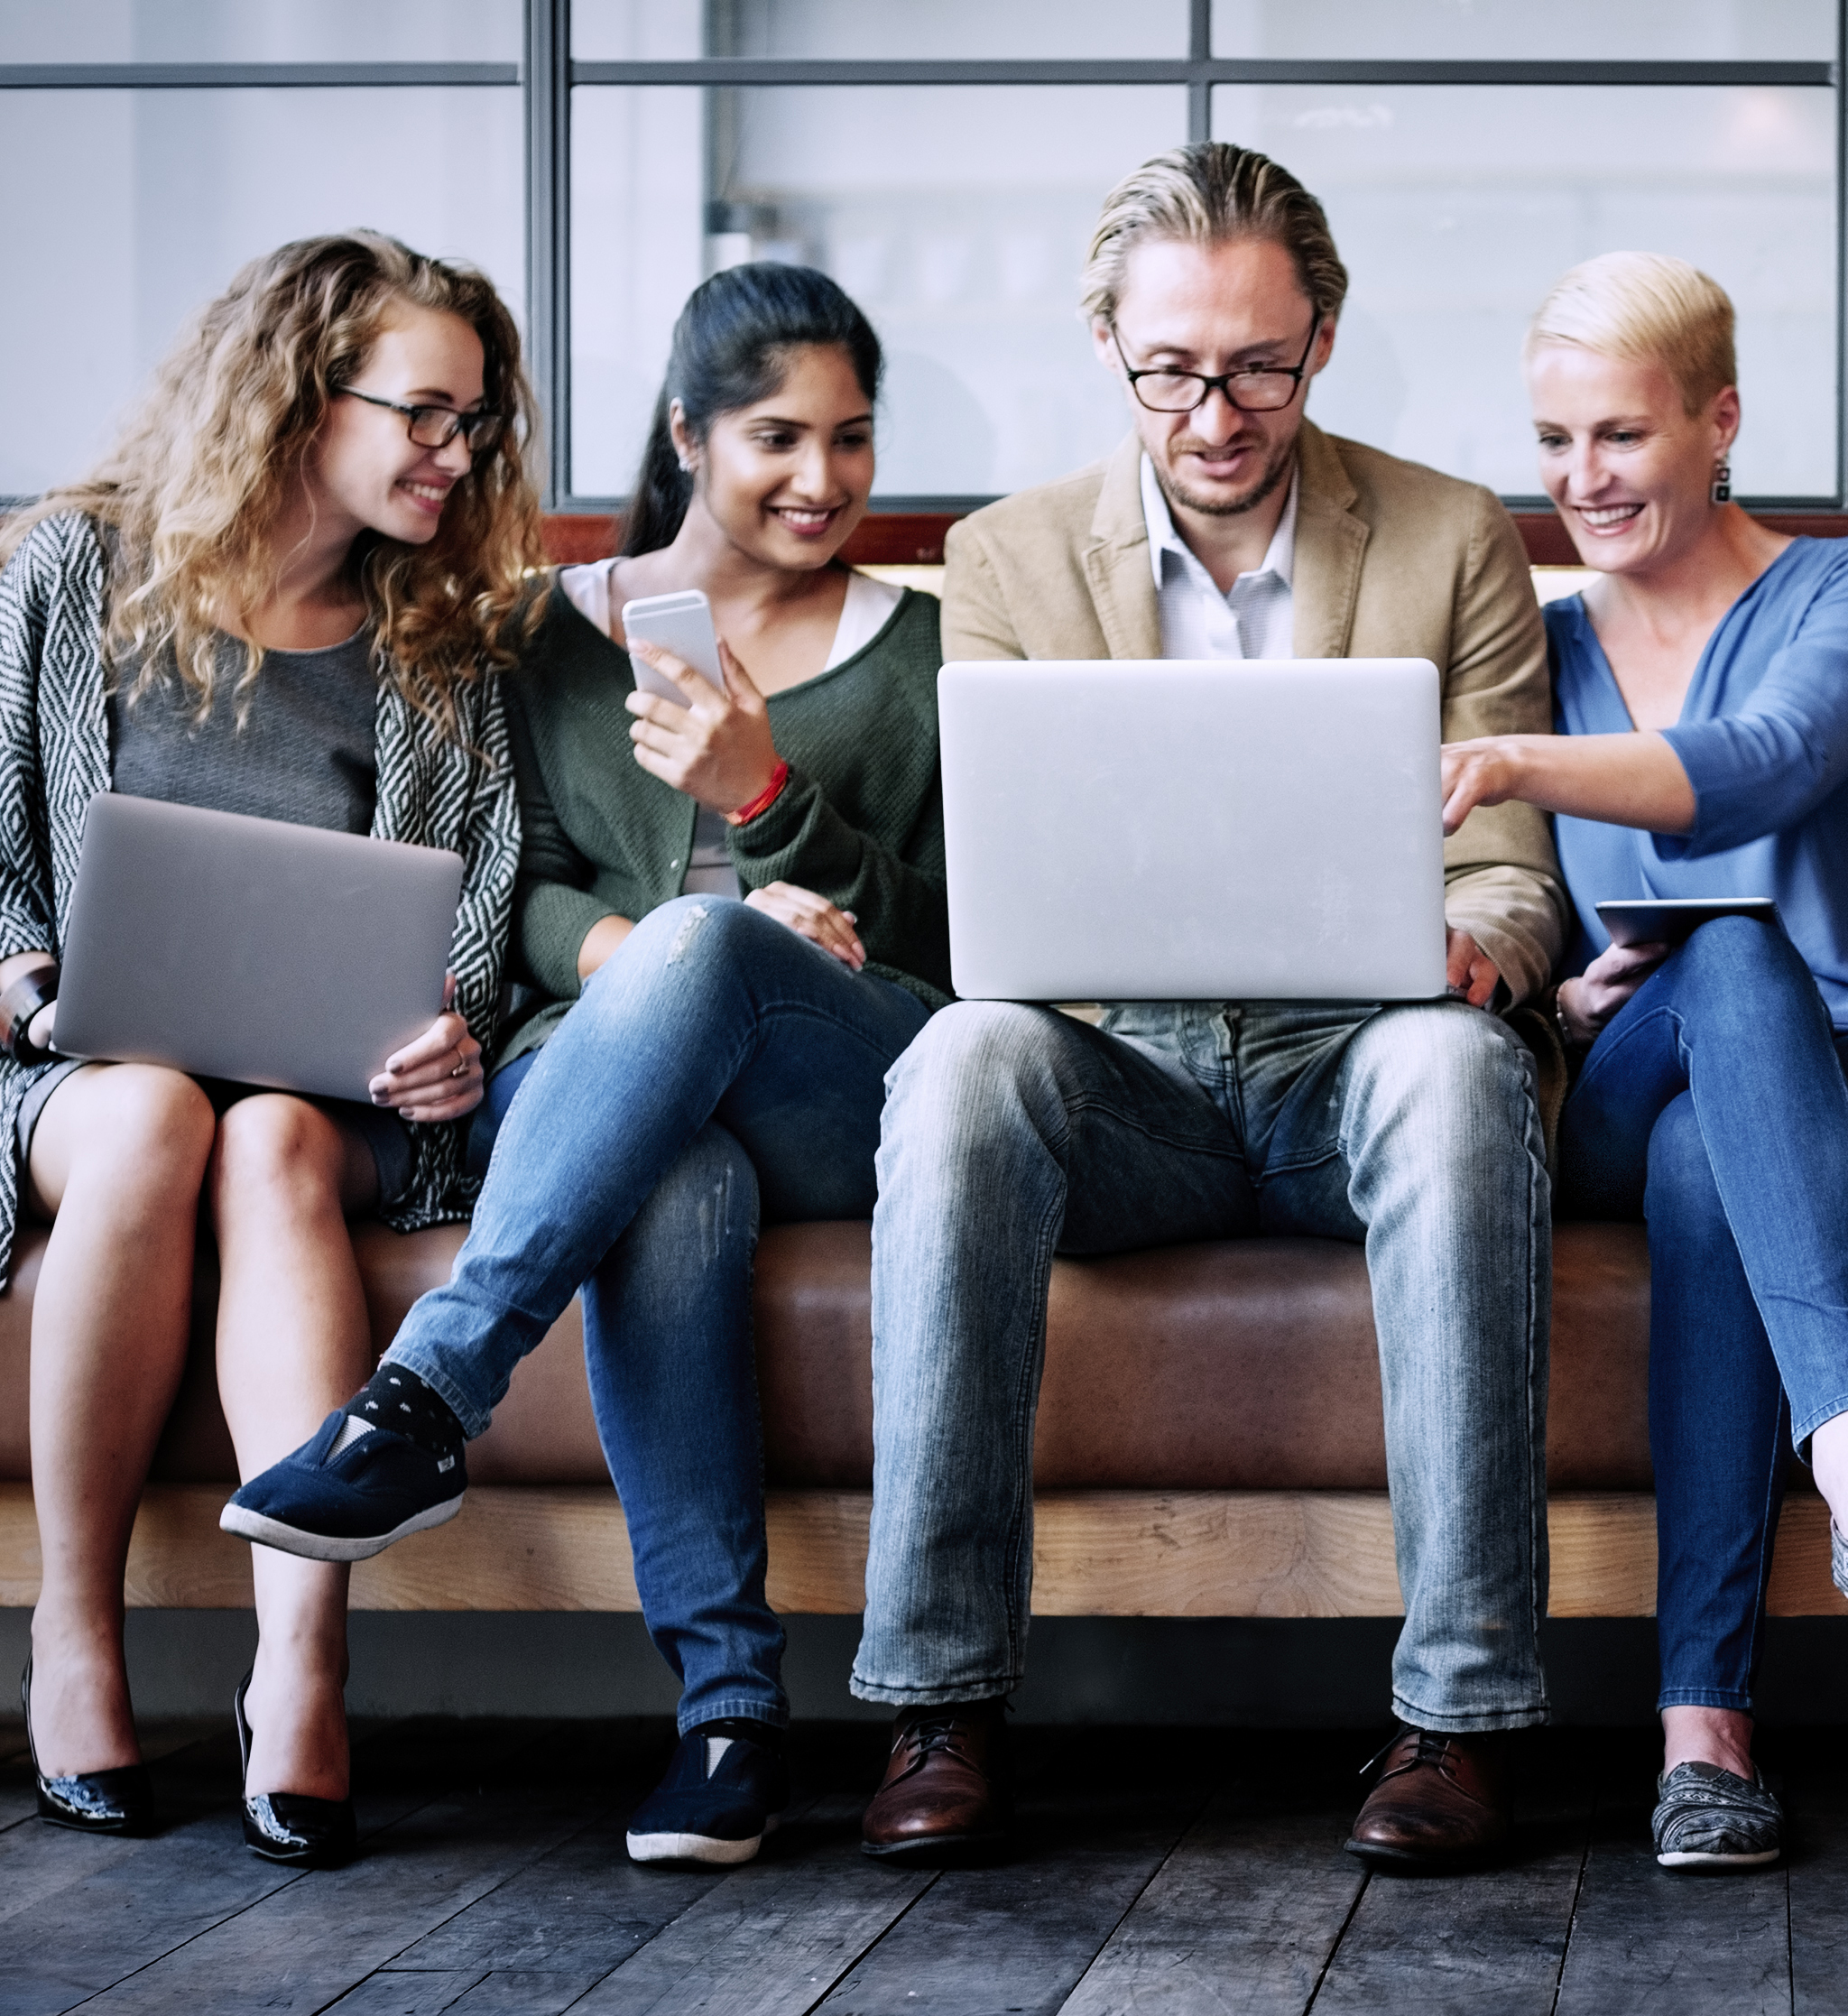 Diverse Group Looking At Laptop